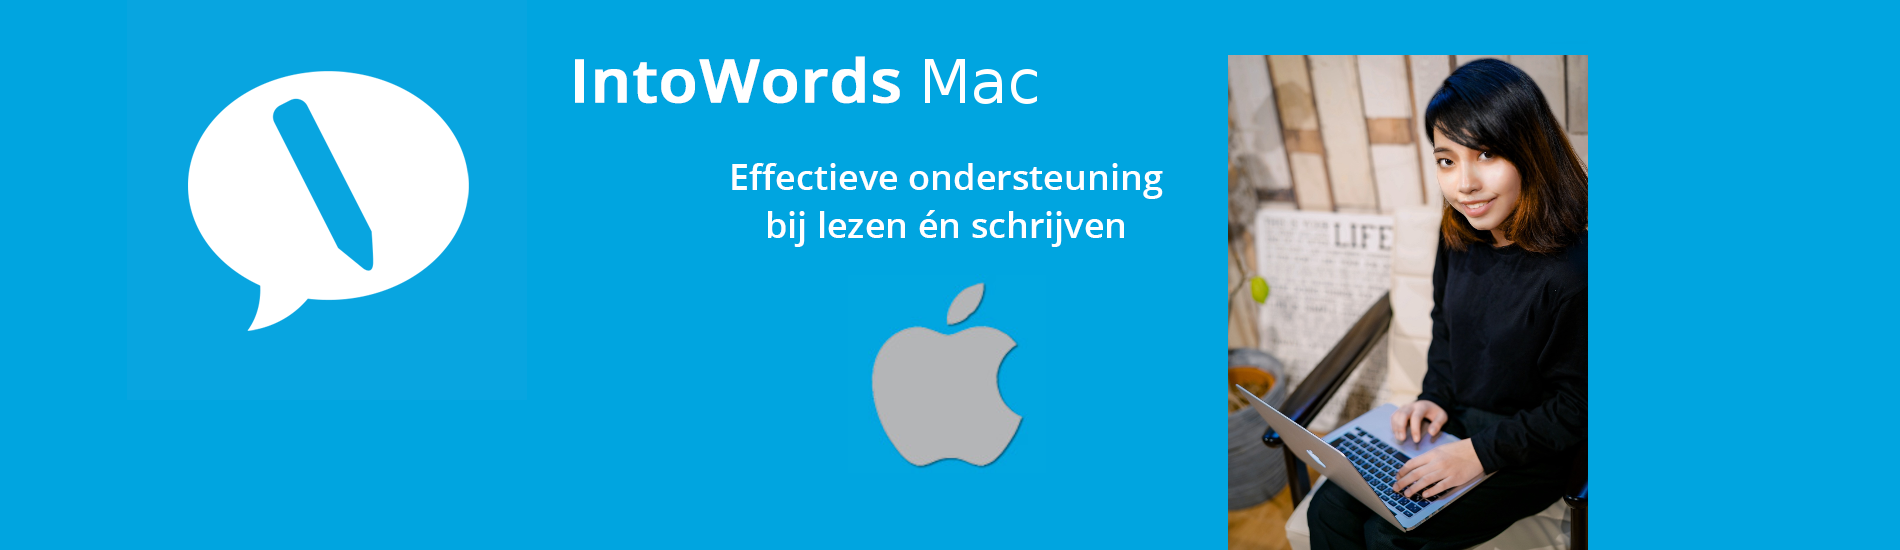 Slider IntoWords Mac